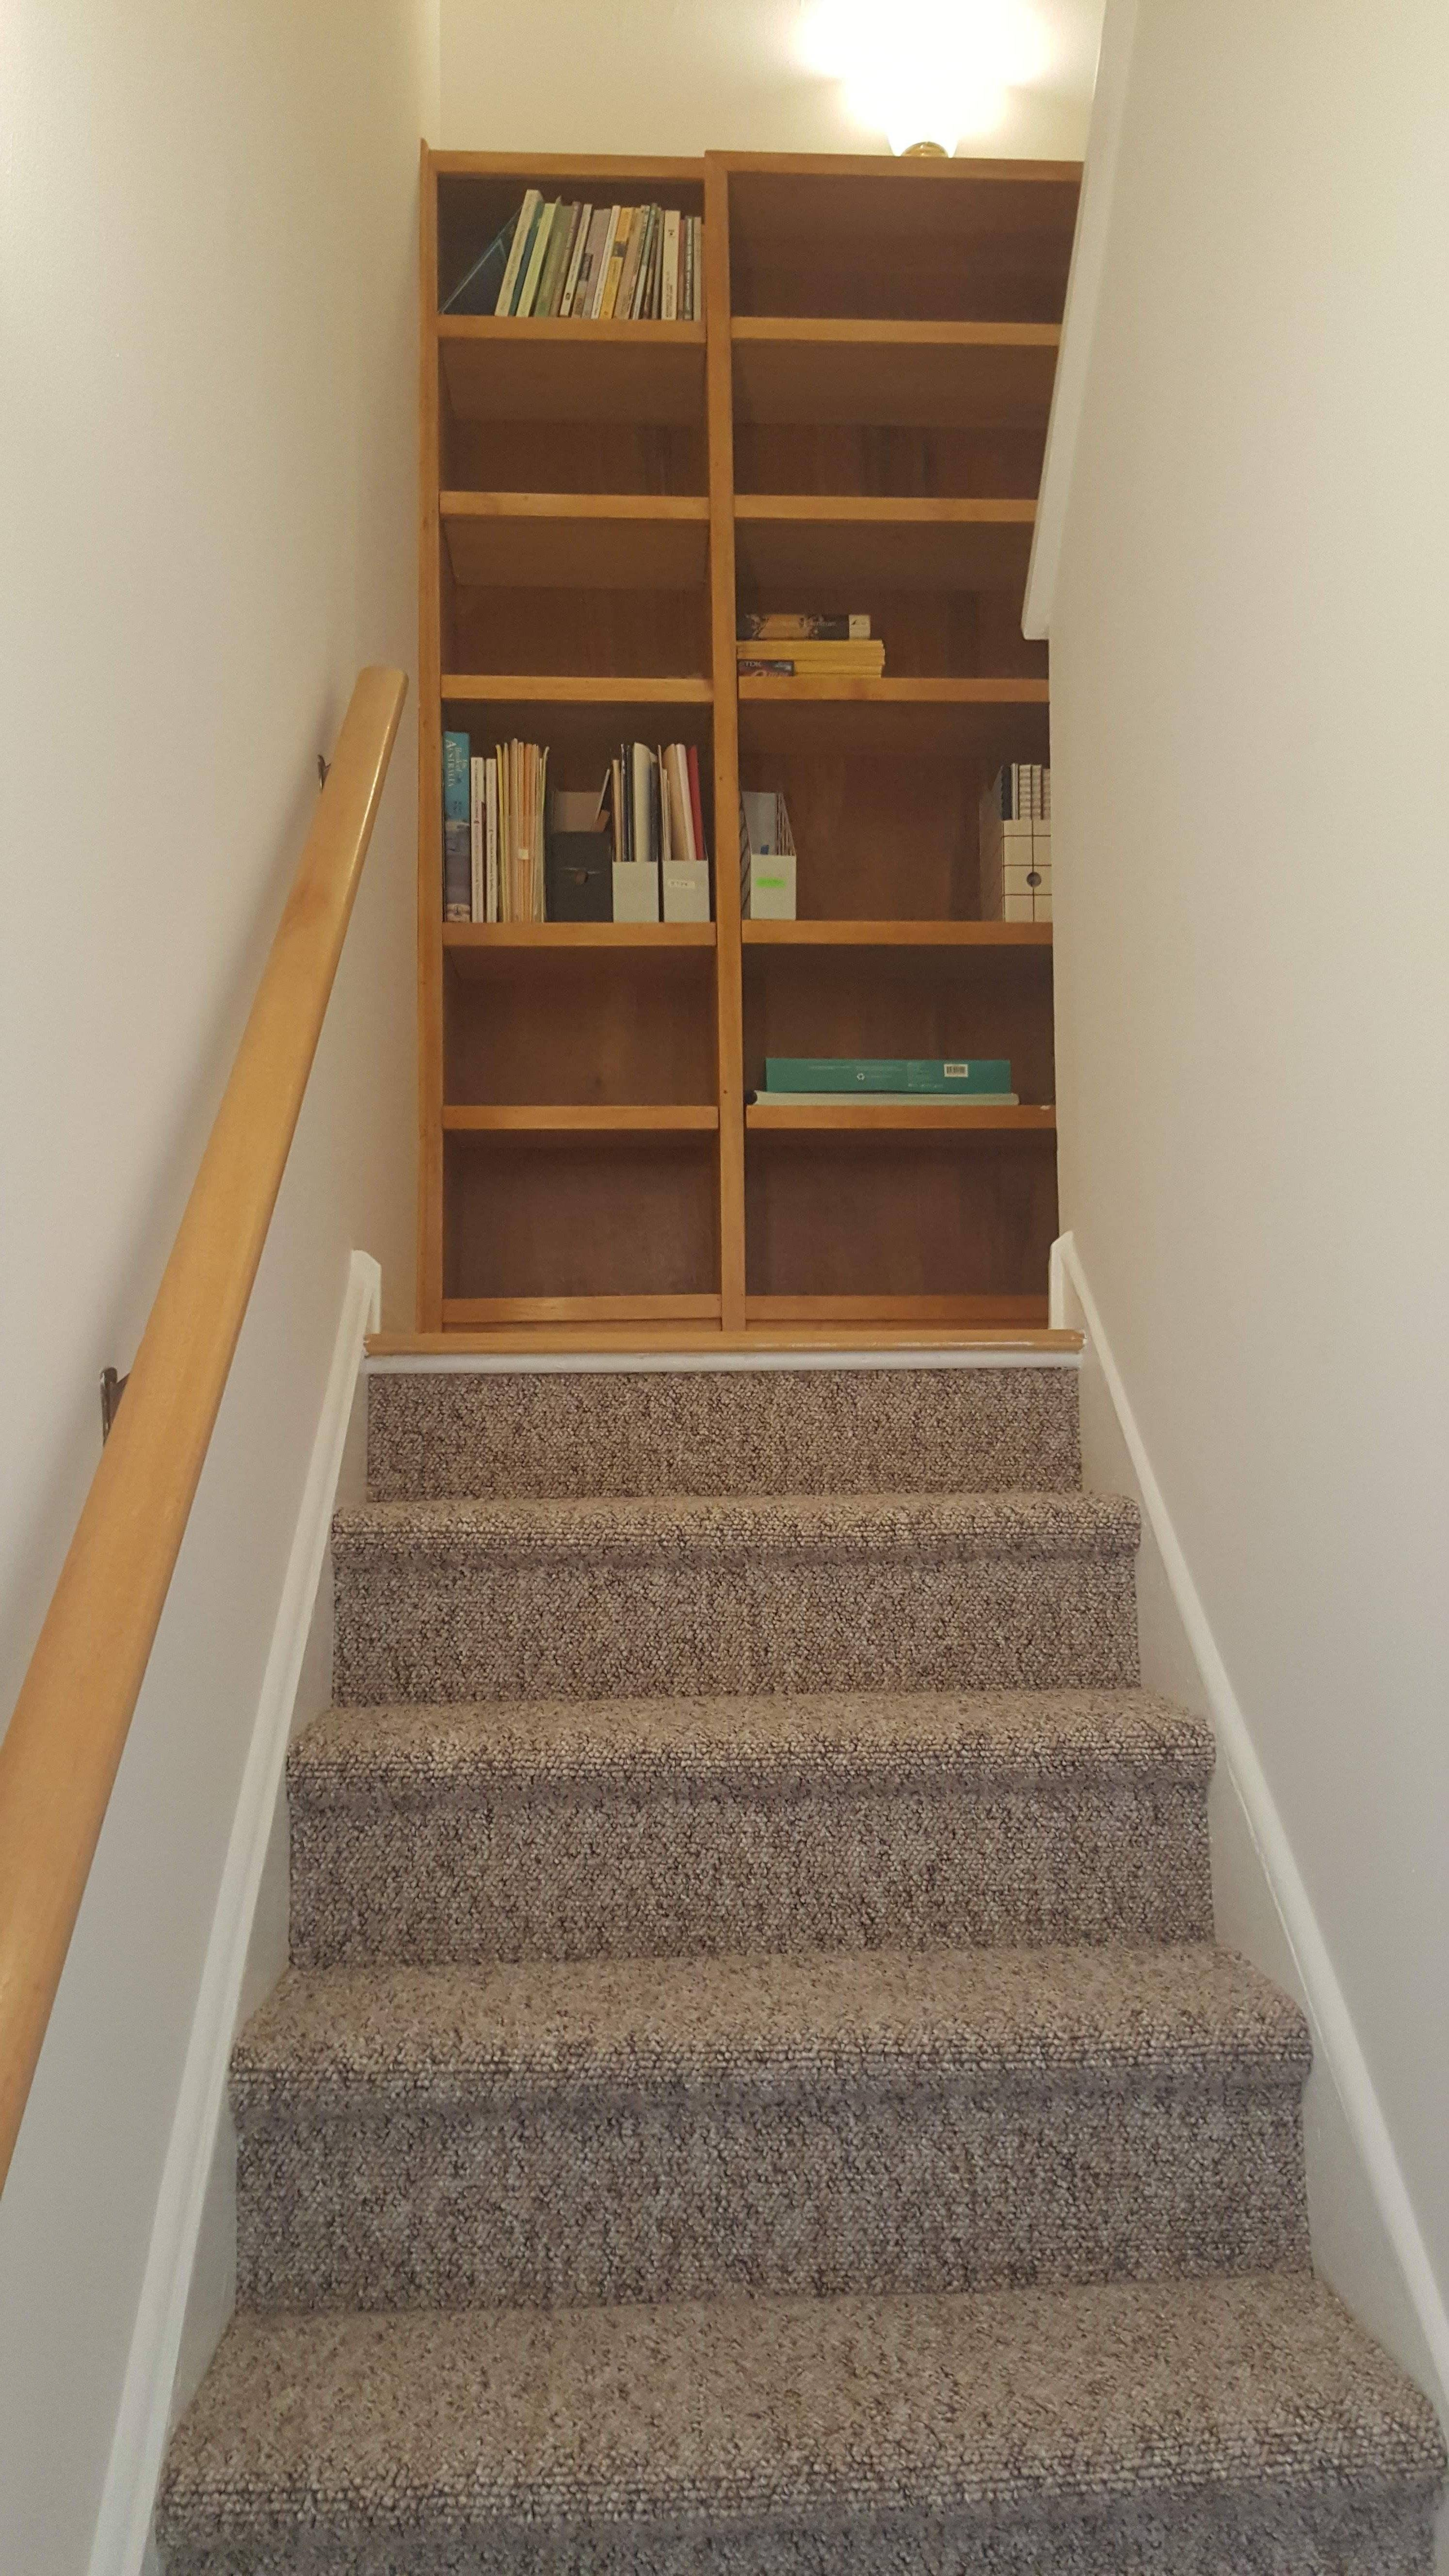 stairs with custom bookshelves